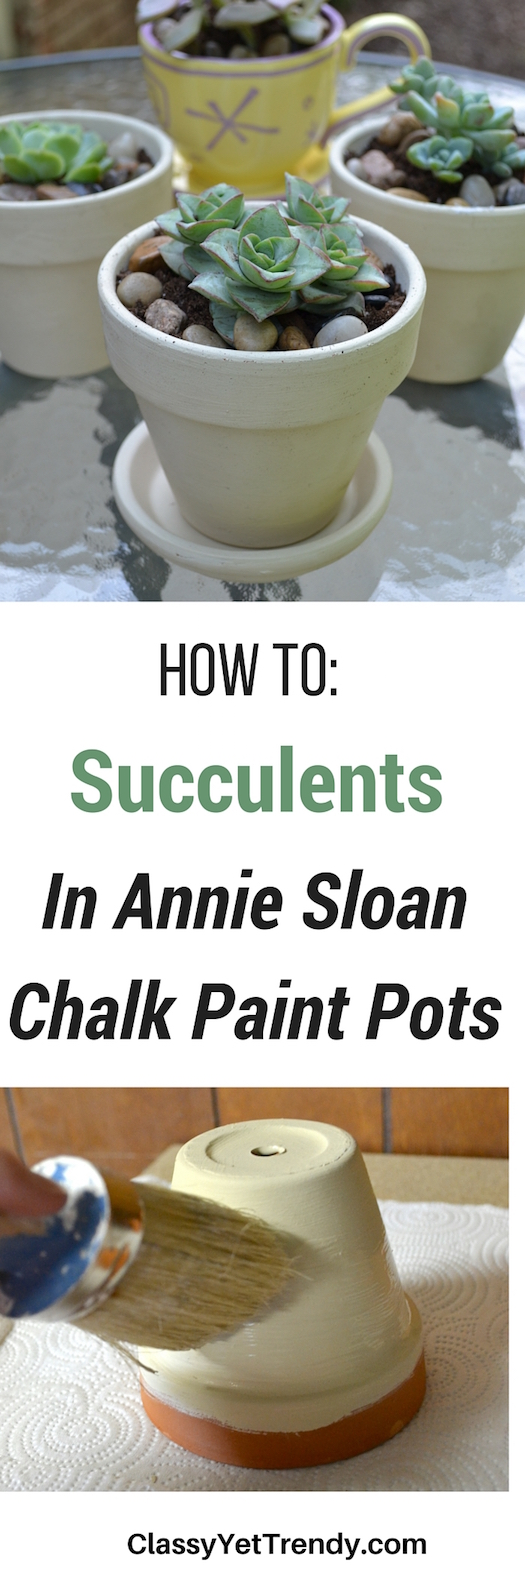 succulents in annie sloan chalk paint pots